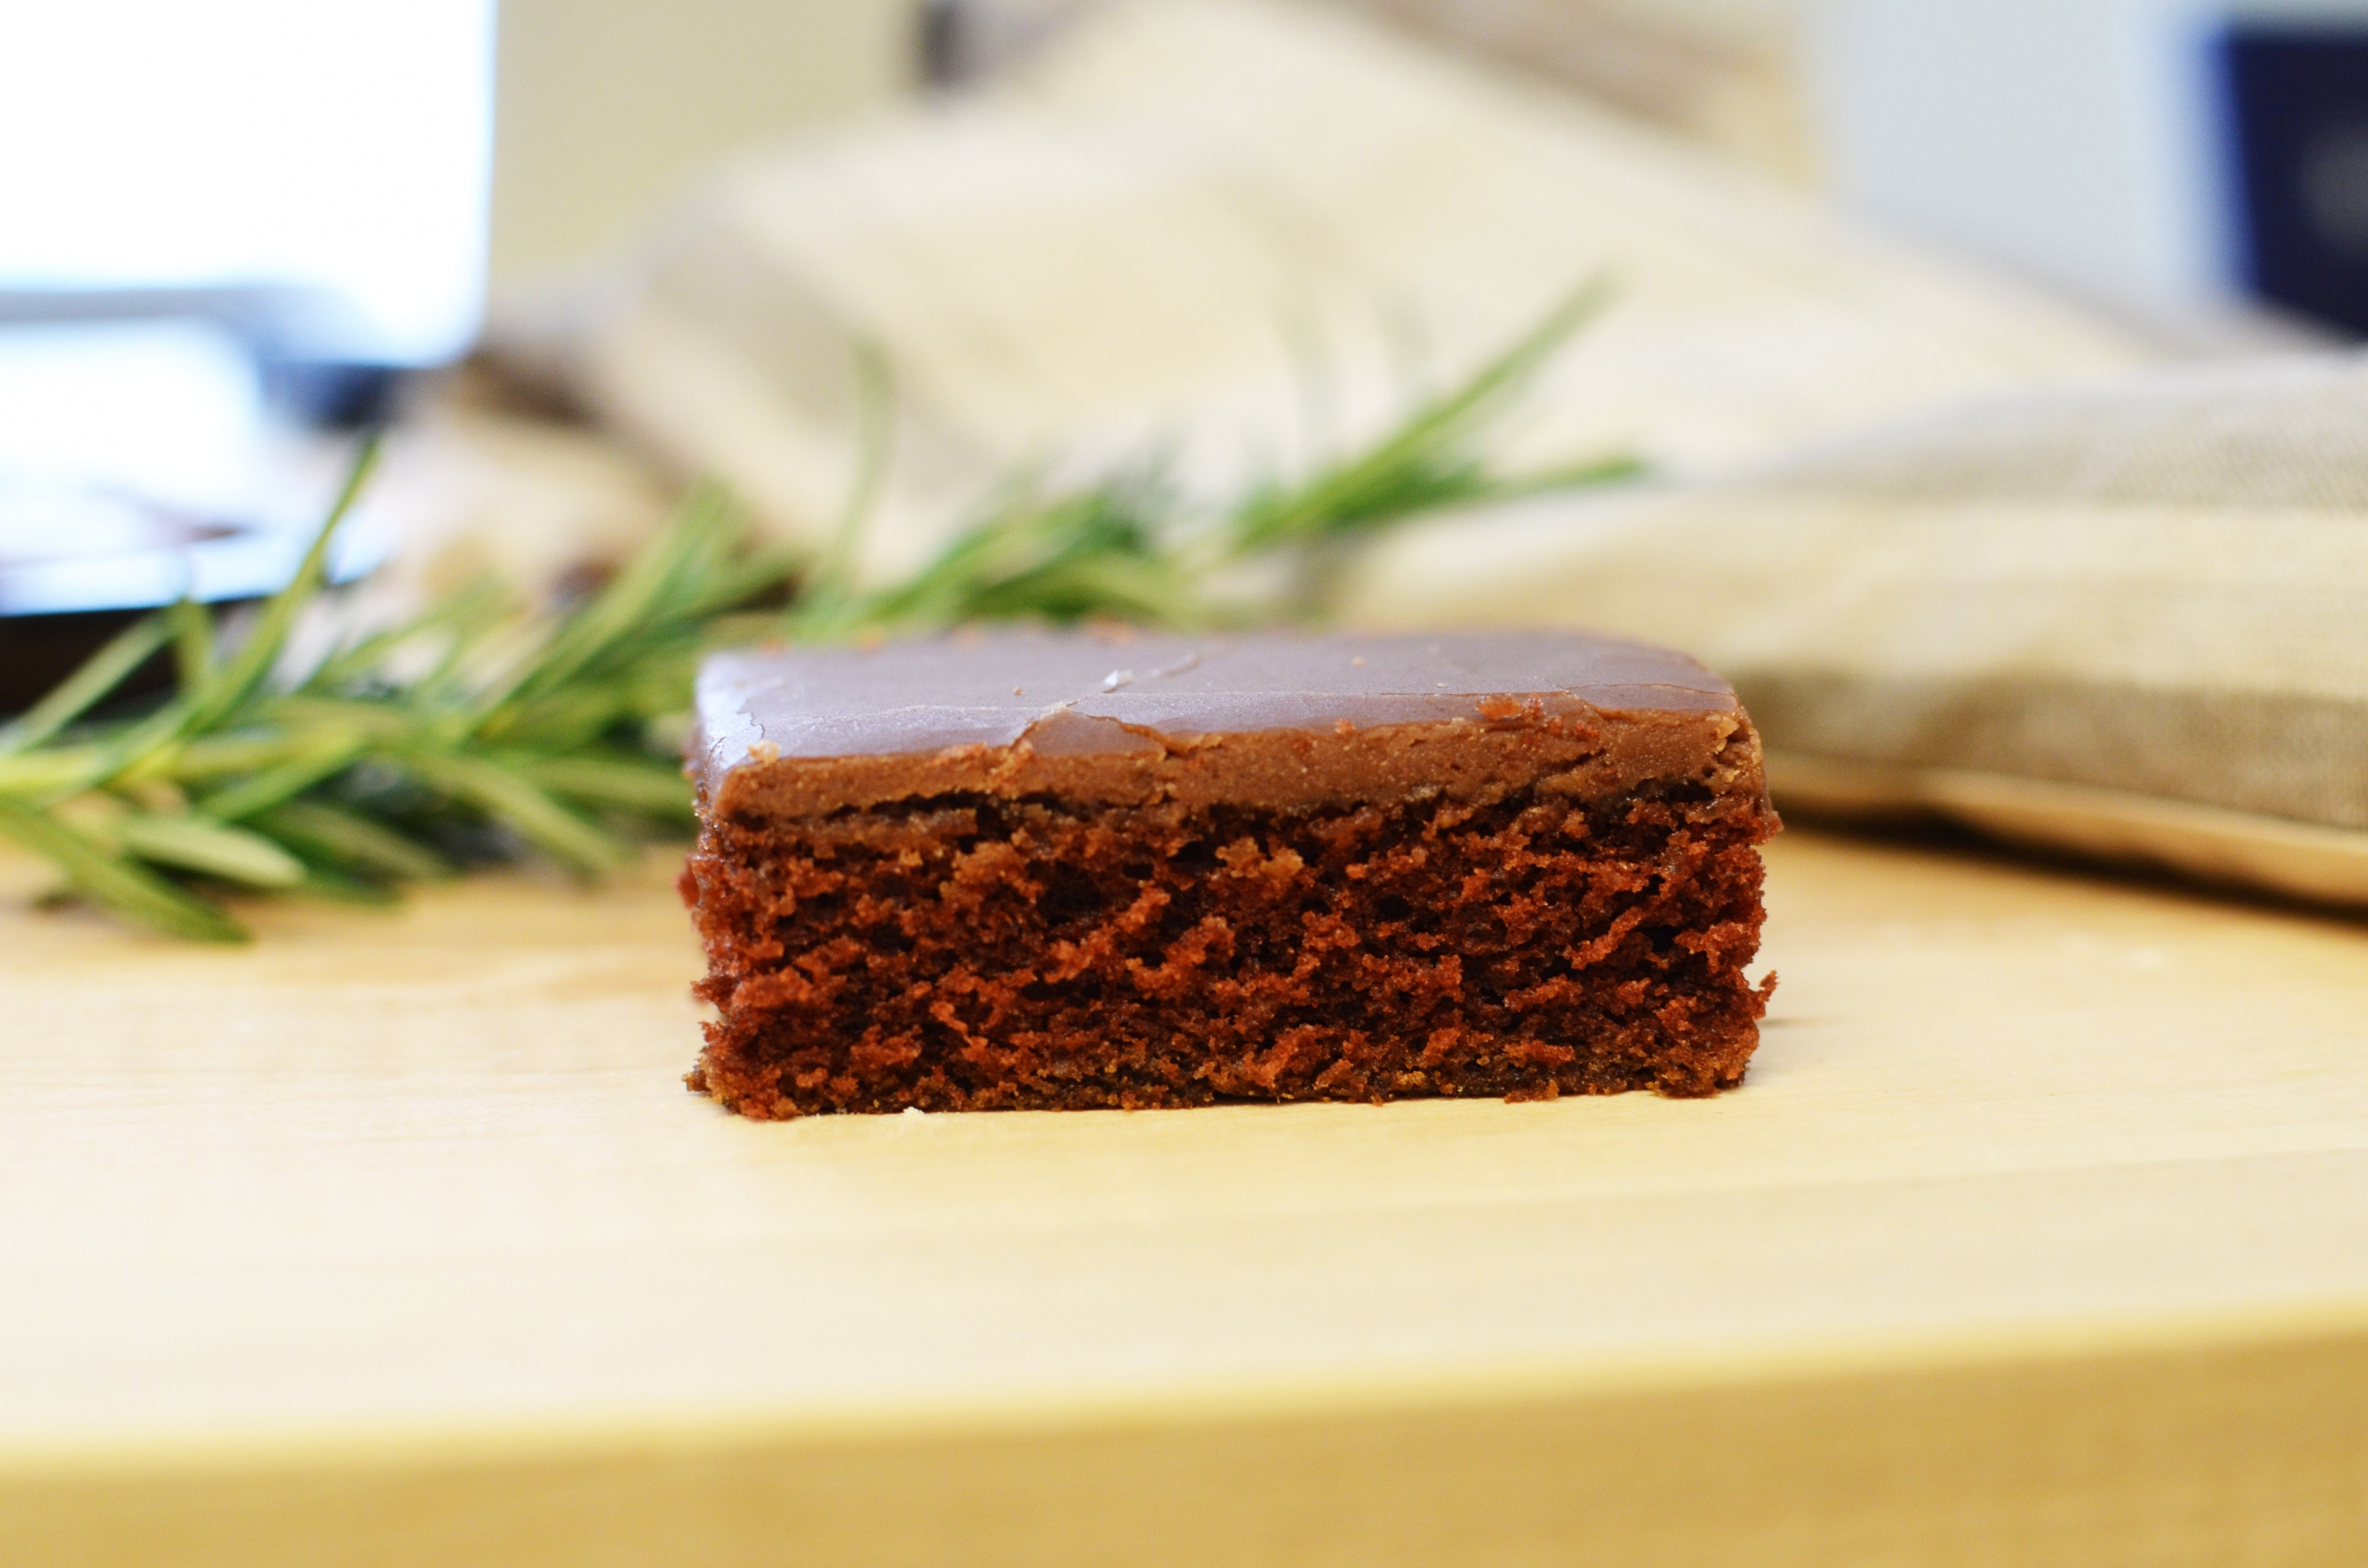 Slice of Chocolate Sheet Cake | Sprig and Flours